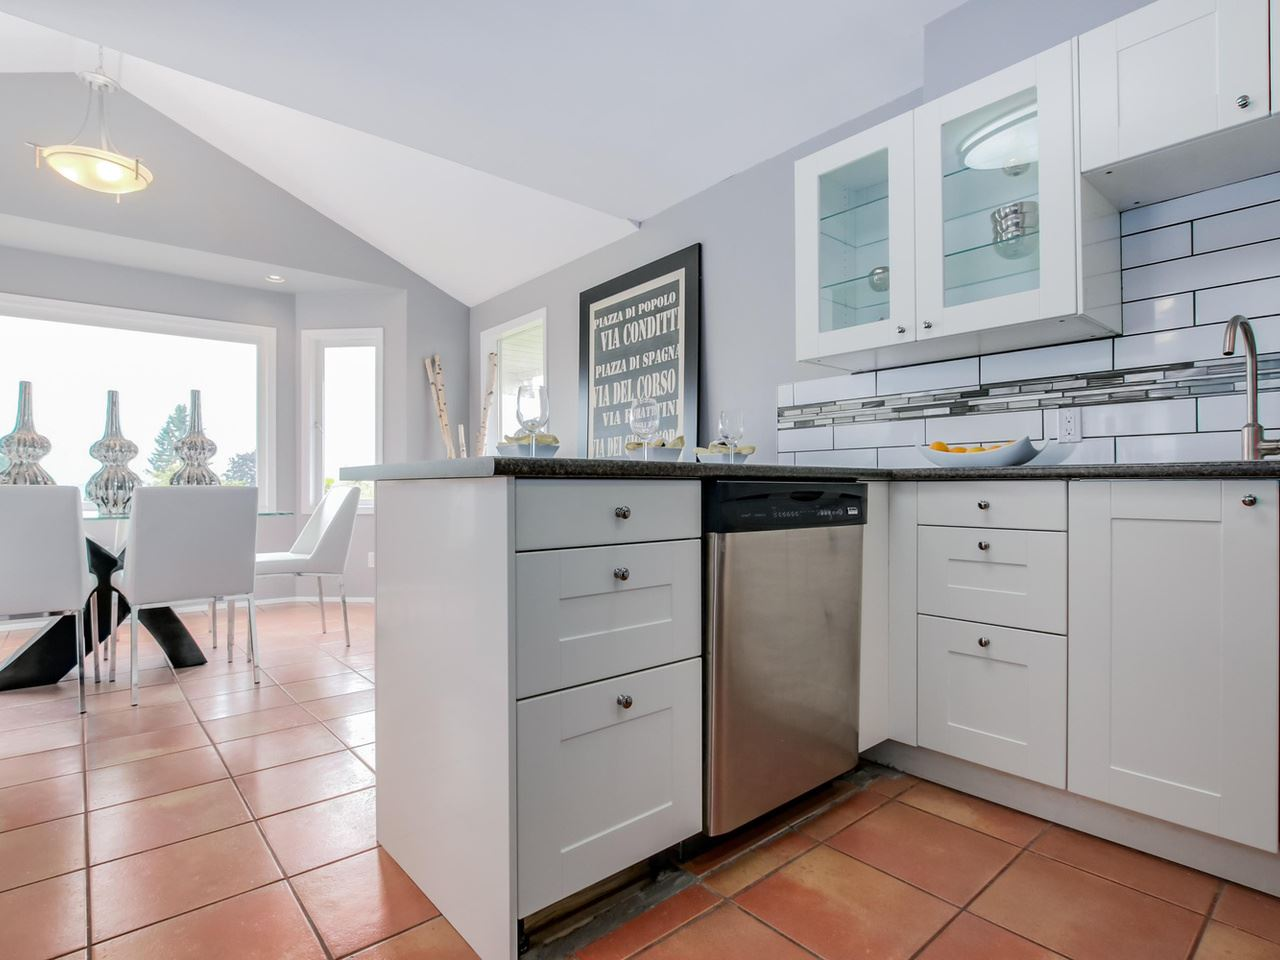 Photo 4: Photos: 1014 CALVERHALL Street in North Vancouver: Calverhall House for sale : MLS® # R2090205